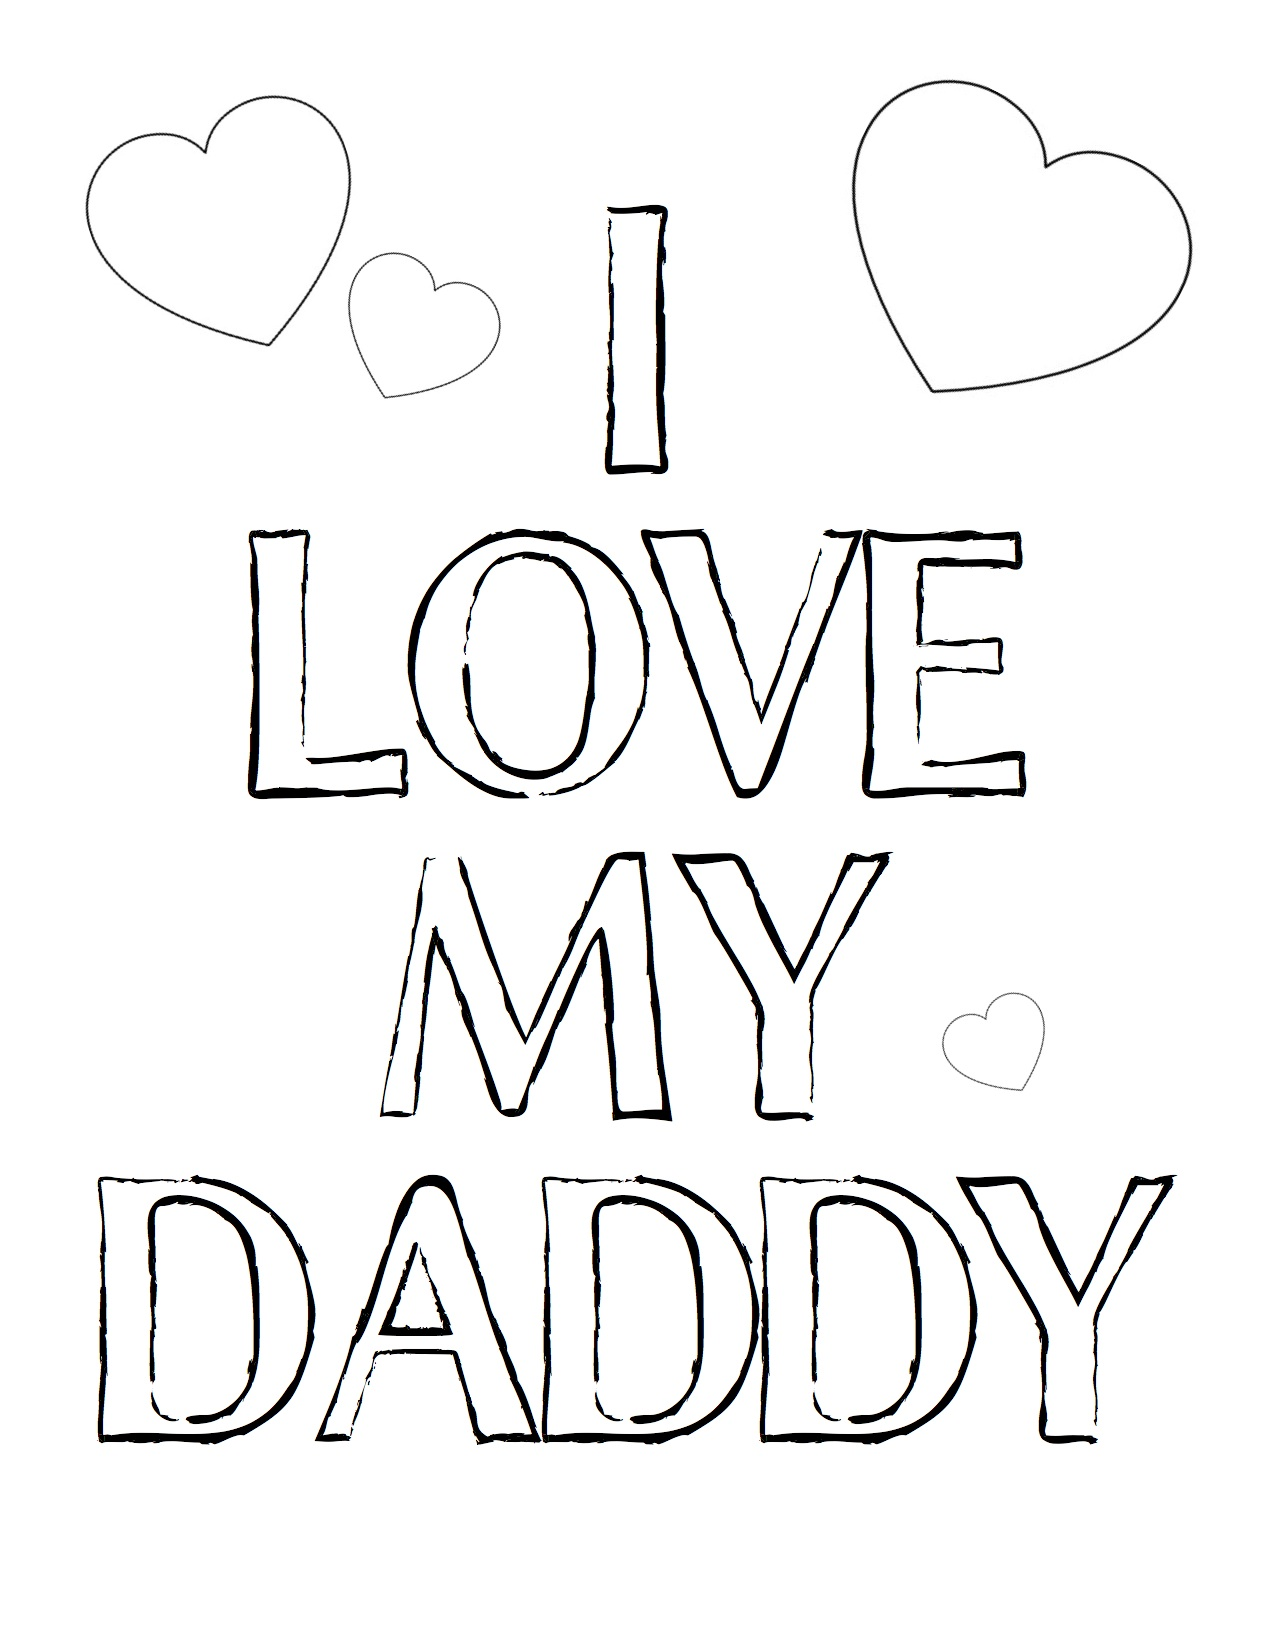 6 Images of I Love You Daddy Printables